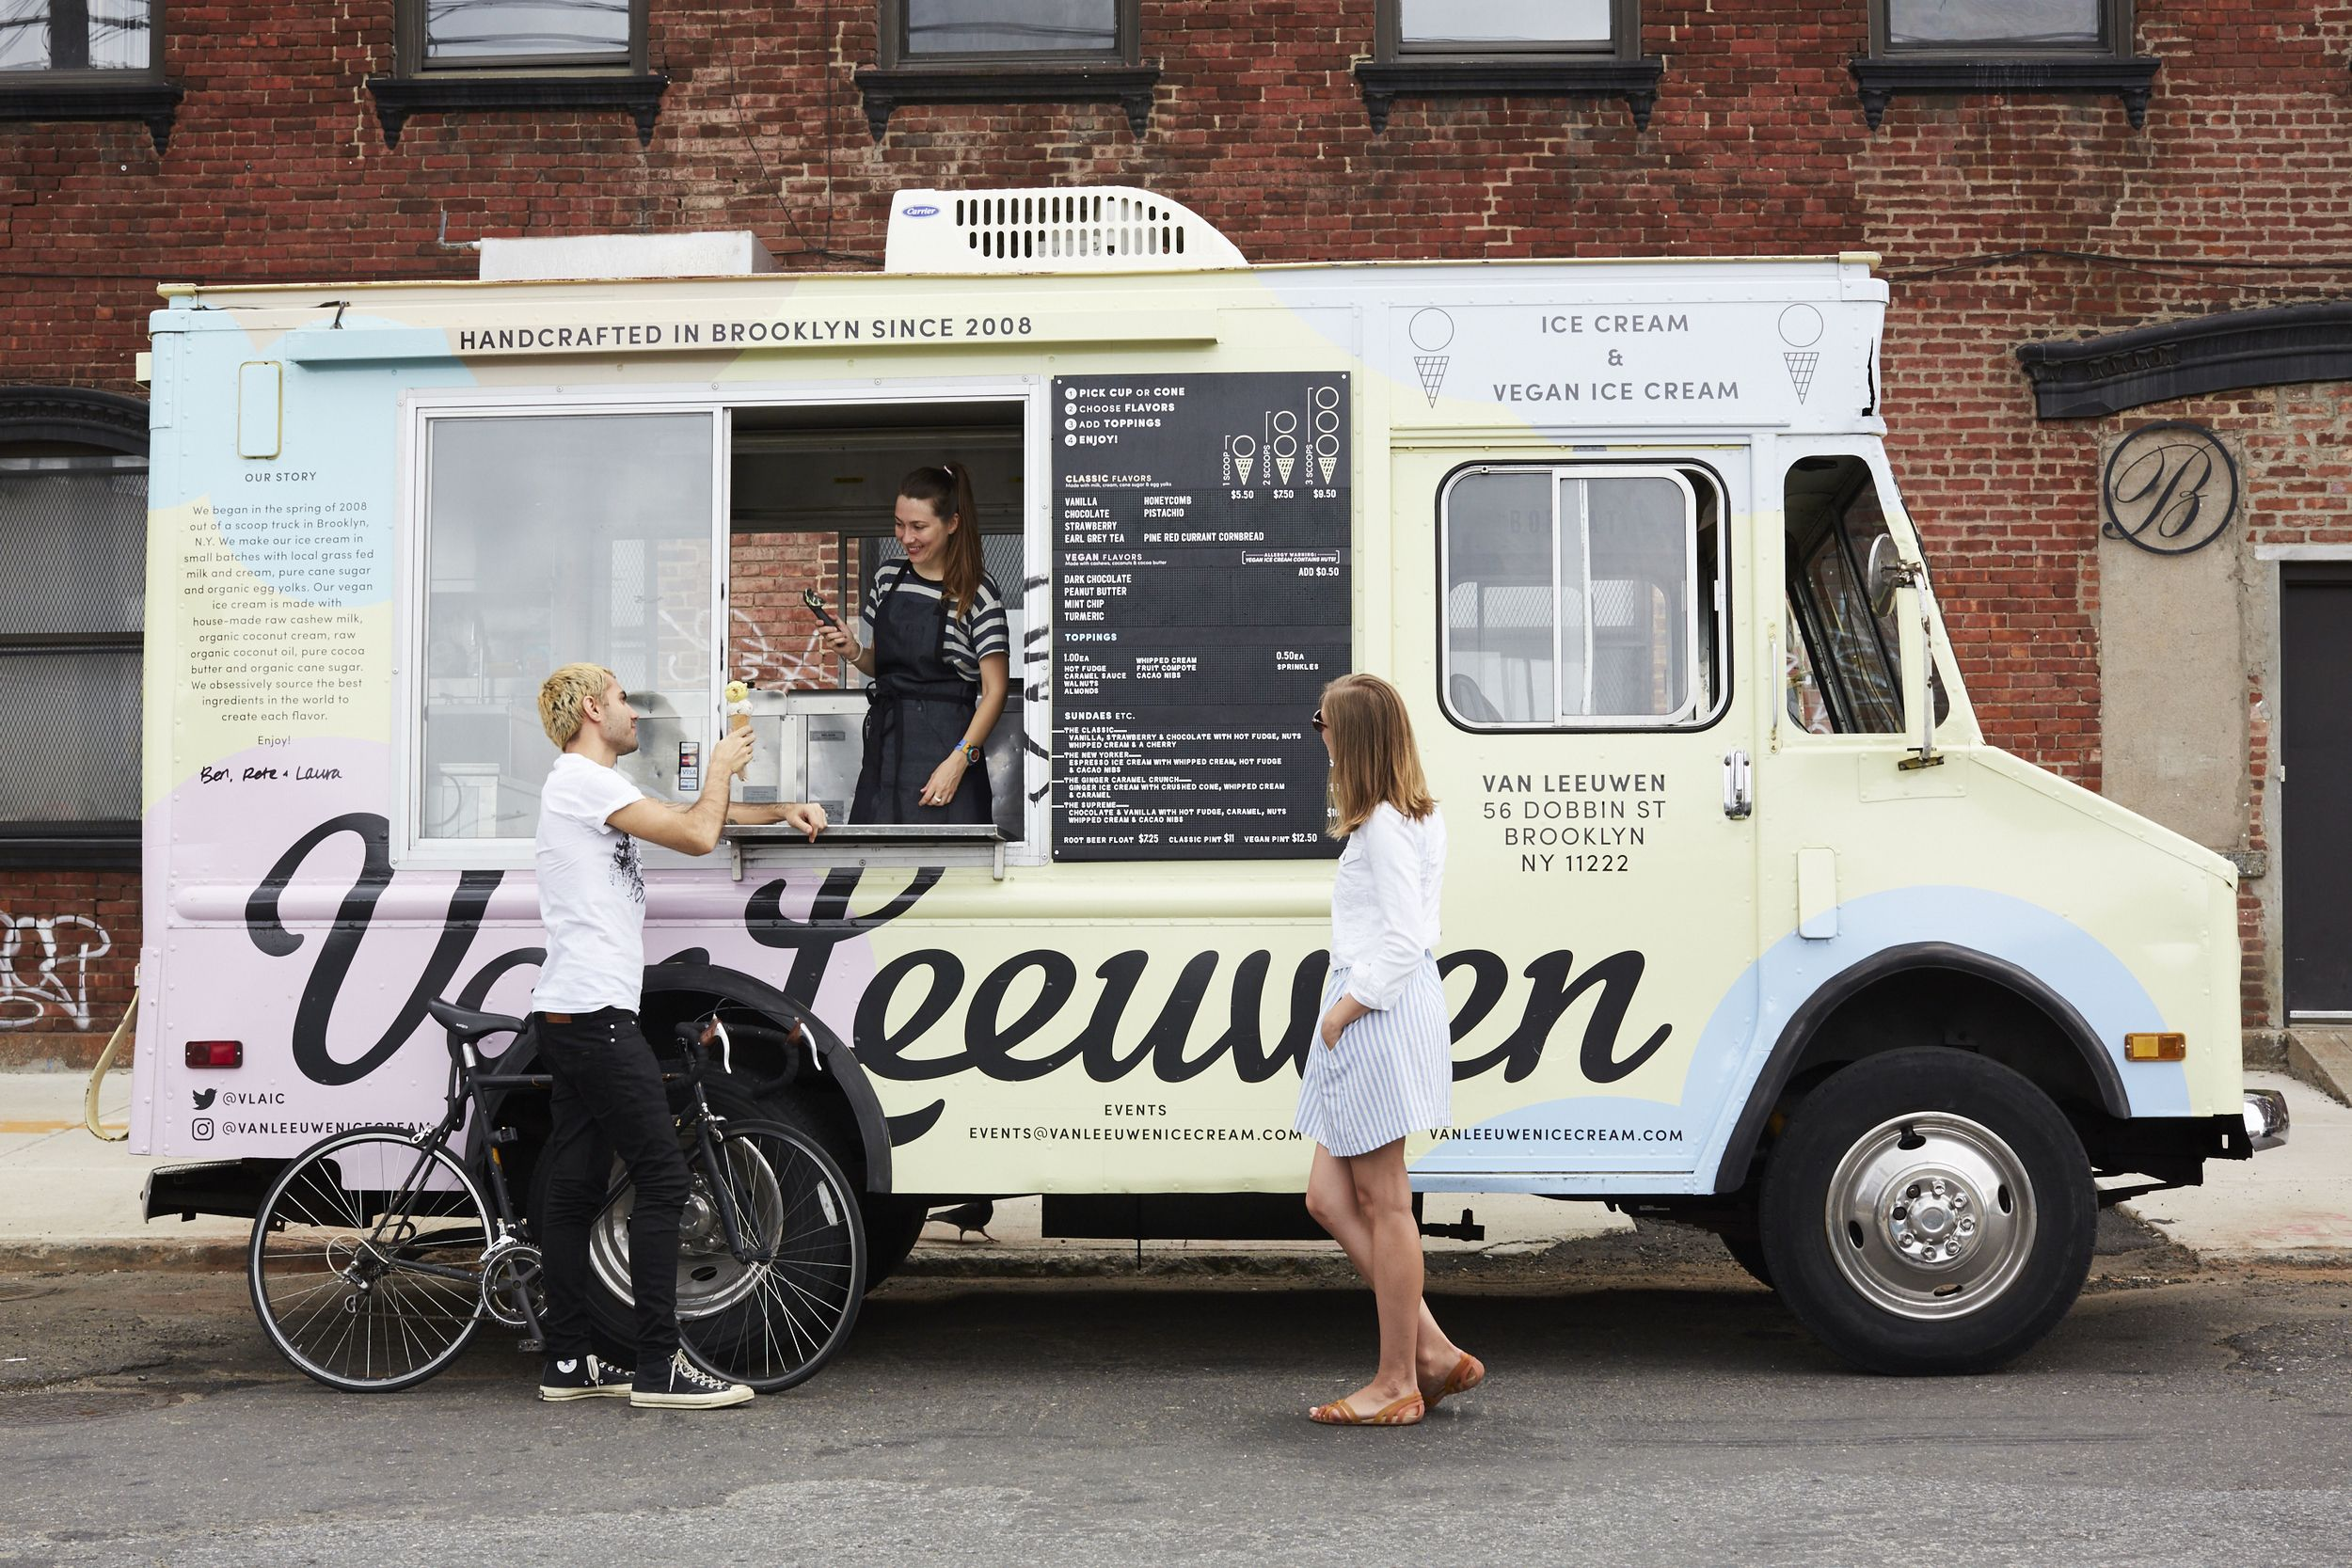 Van Leeuwen Ice Cream Food Truck Catering